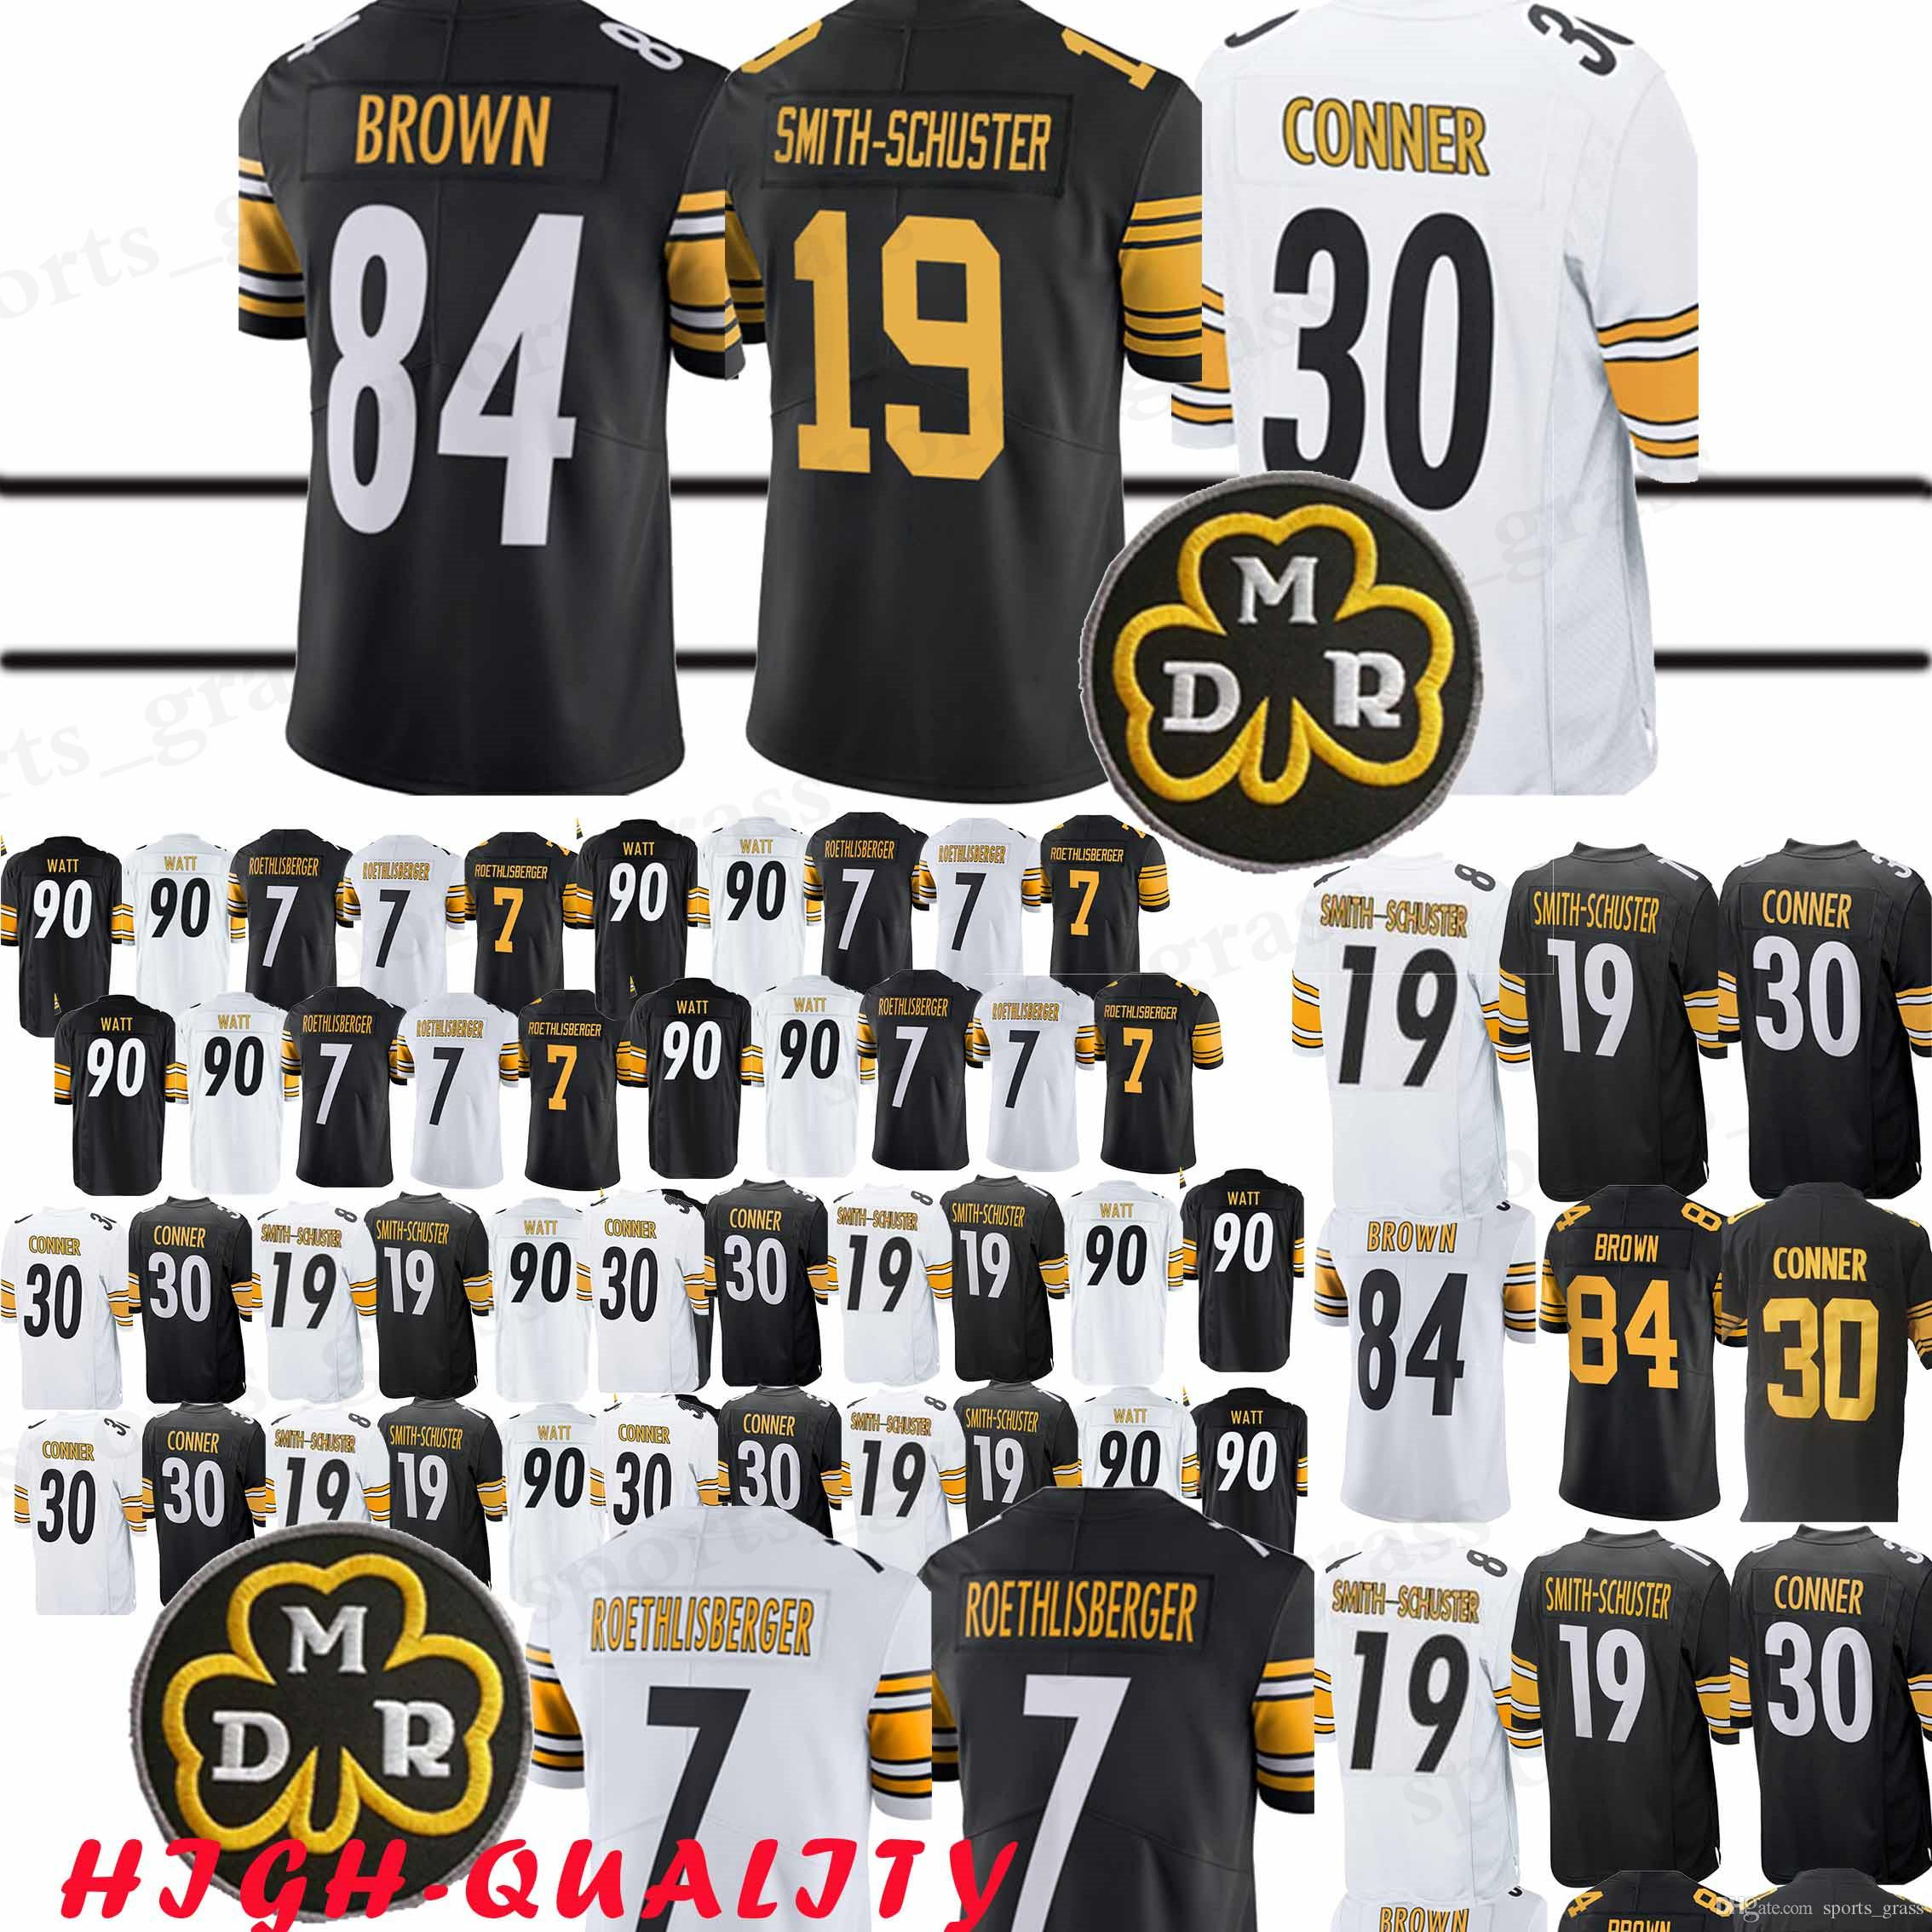 official photos bb8cd 44427 30 James Conner 2019 Pittsburgh jerseys 7 Ben Roethlisberger Steeler 19  Juju Smith-Schuster 90 T.J. Watt jerseys 2019 new